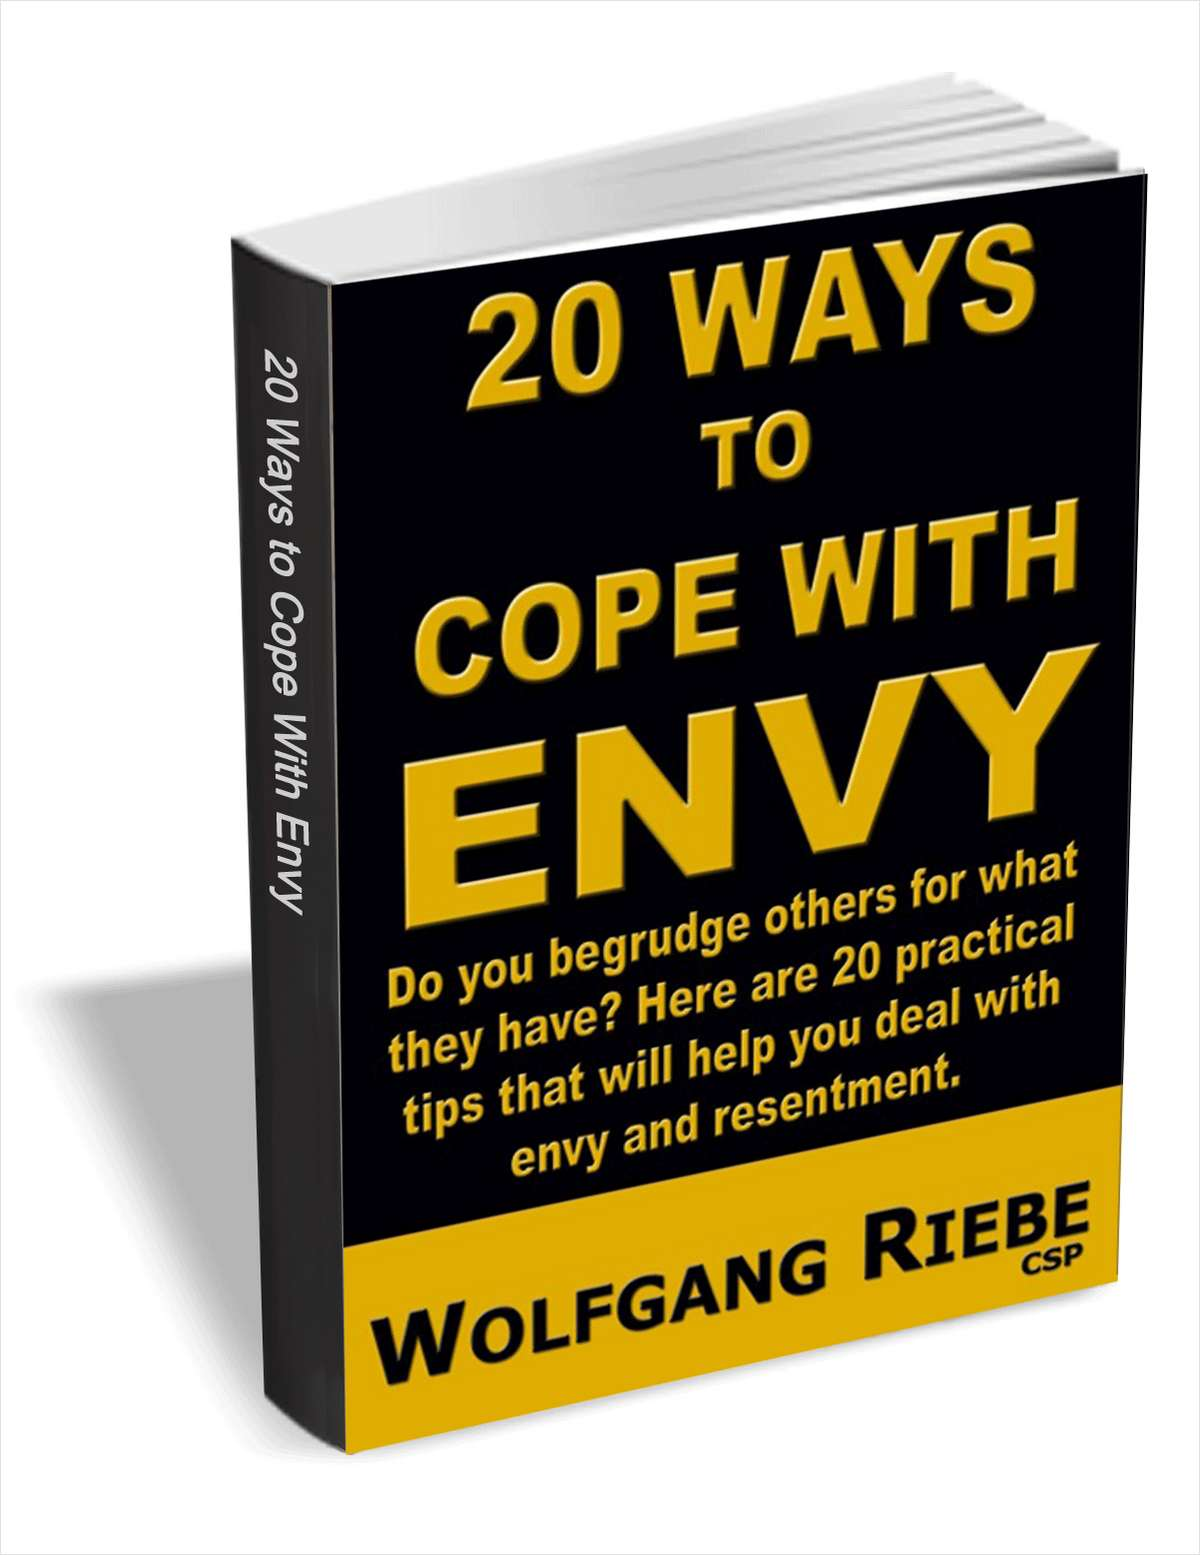 20 Ways to Cope With Envy